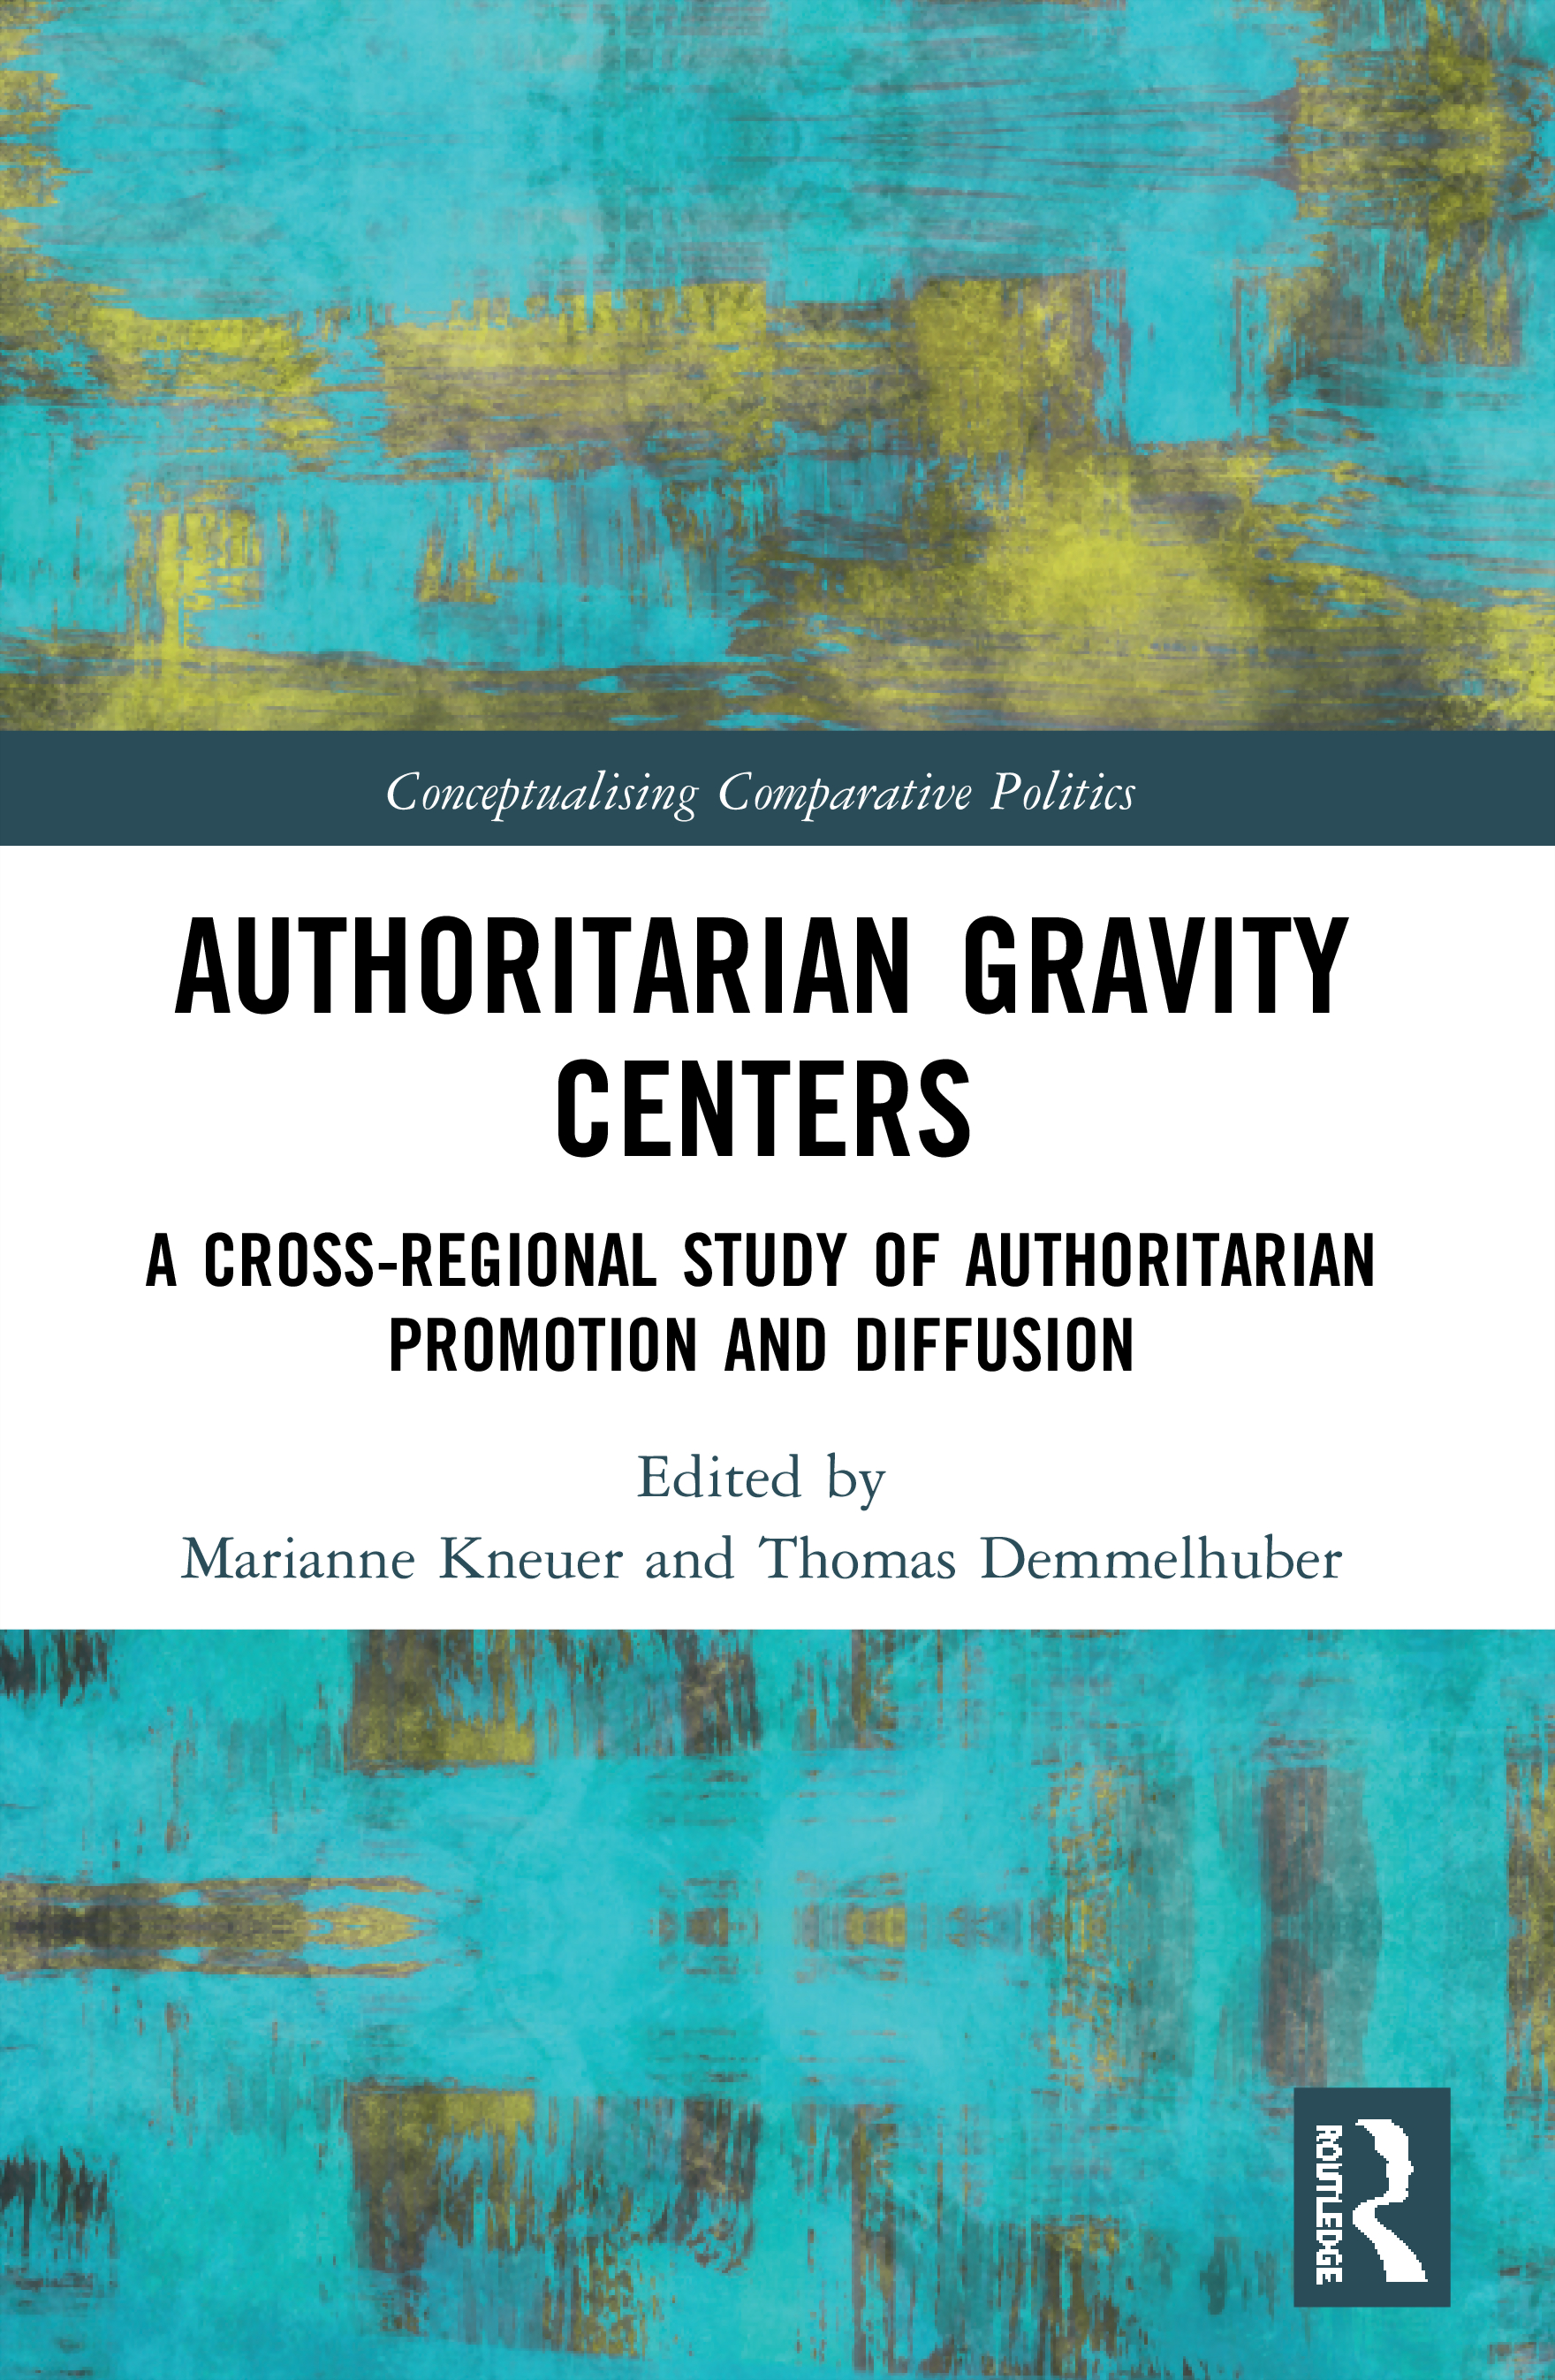 Authoritarian Gravity Centers: A Cross-Regional Study of Authoritarian Promotion and Diffusion book cover